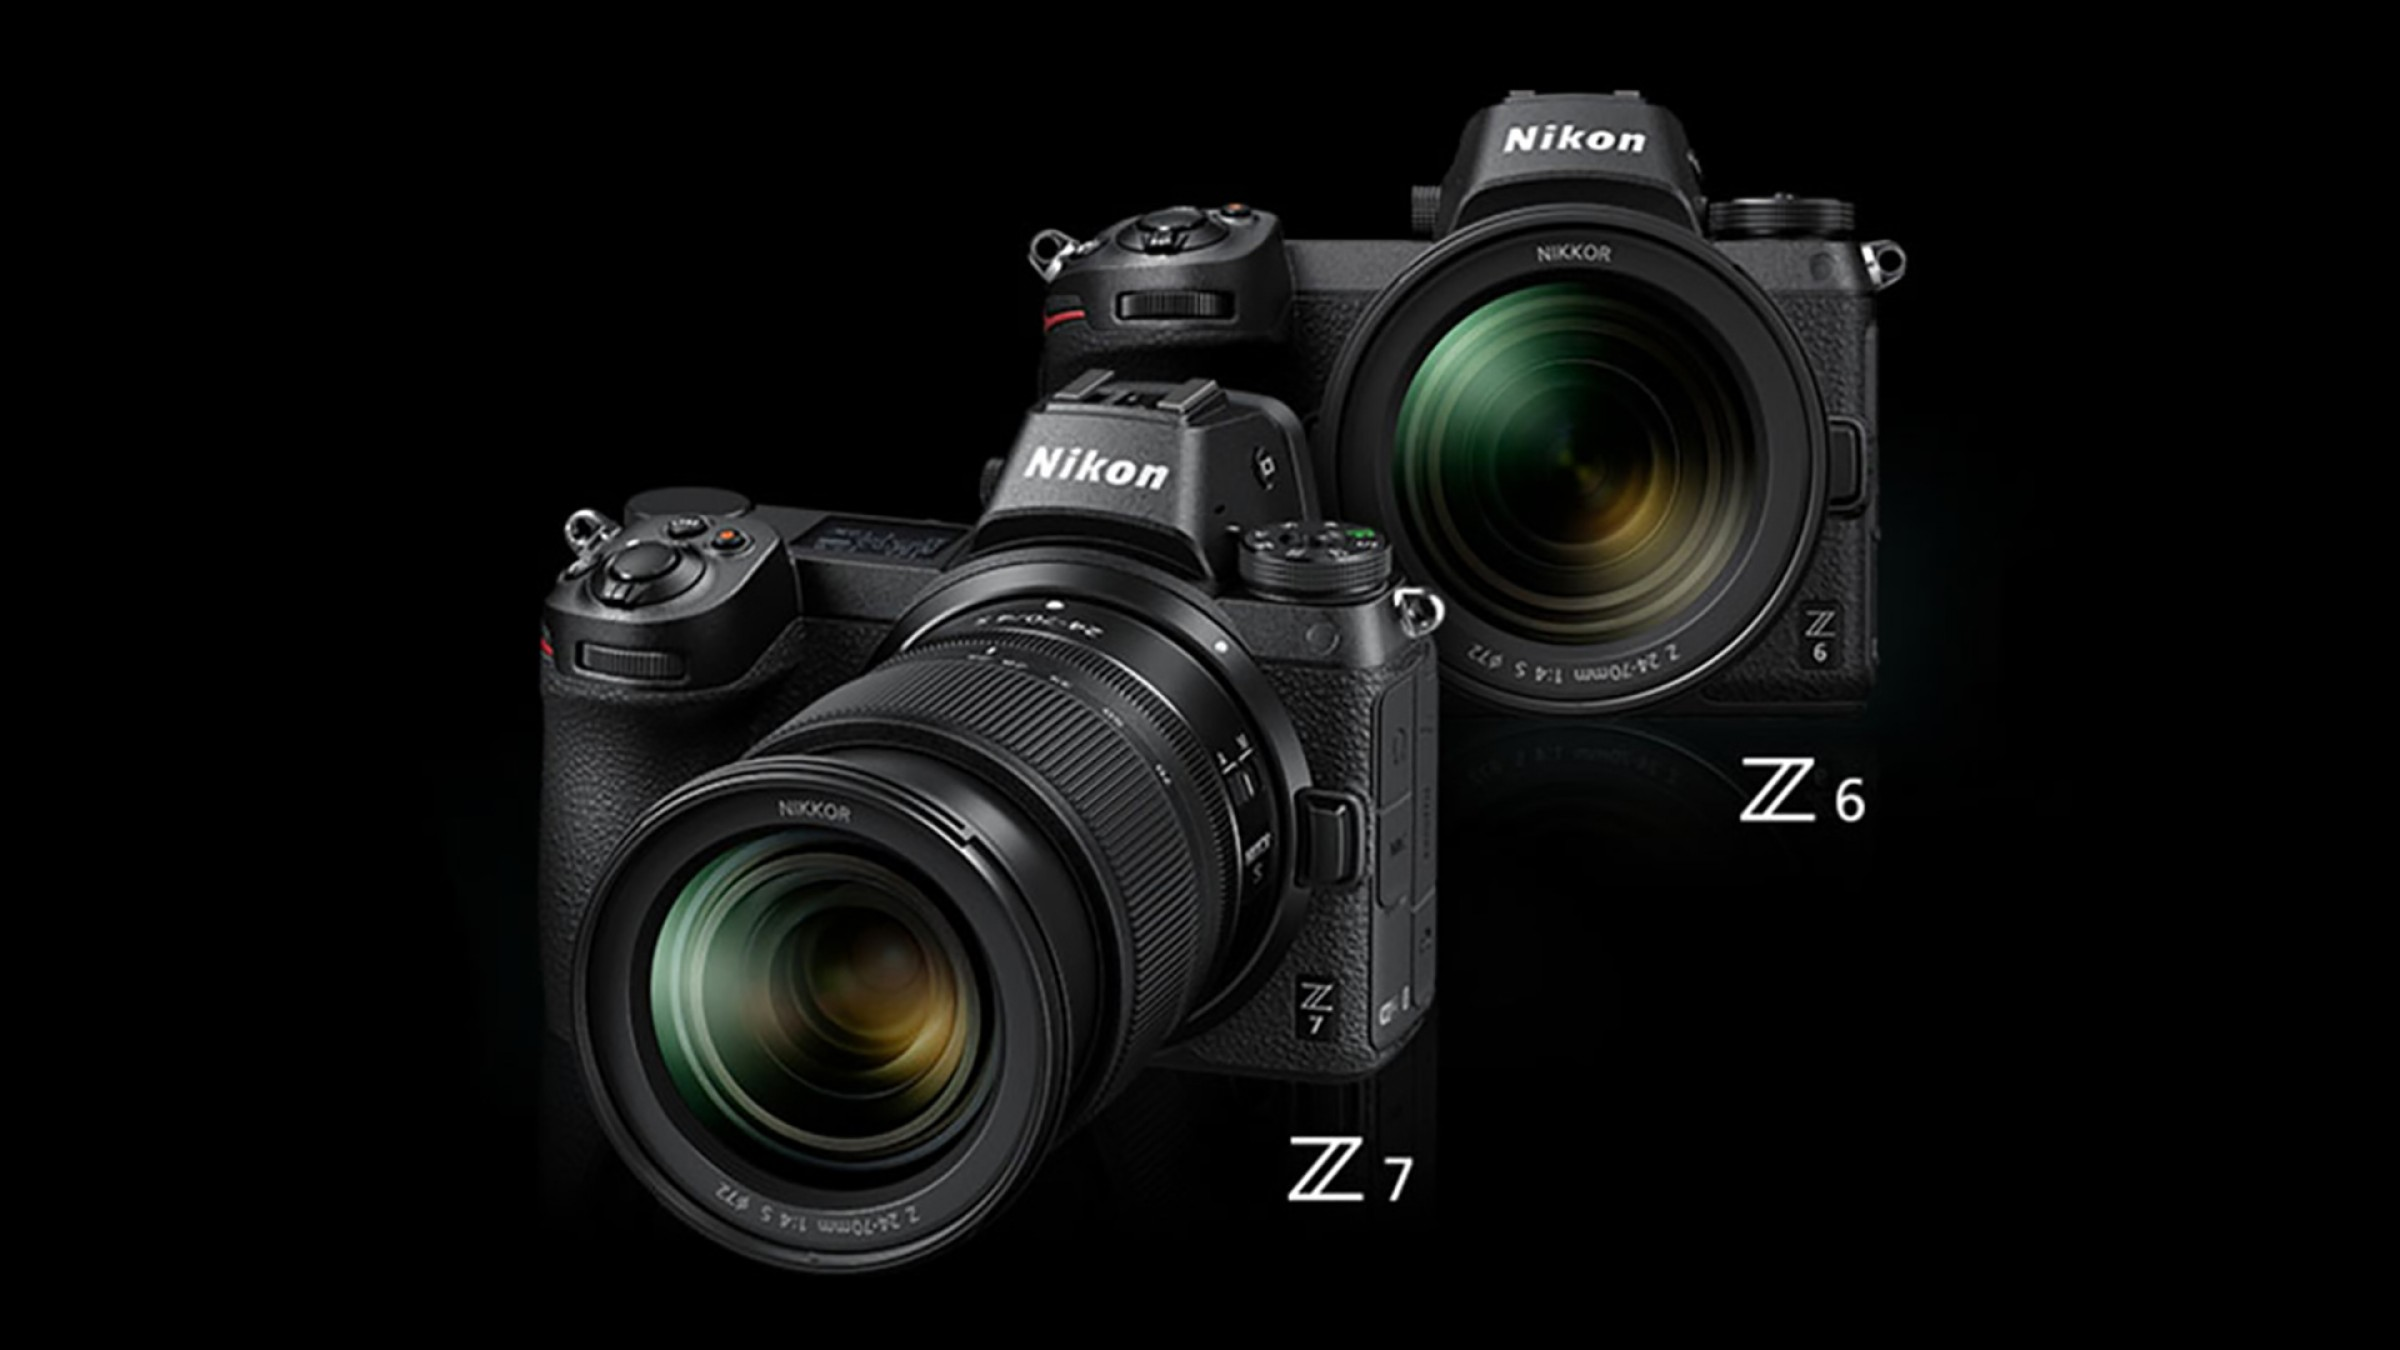 Nikon Z7 vs Nikon Z6 Video Comparison Reviews Are In